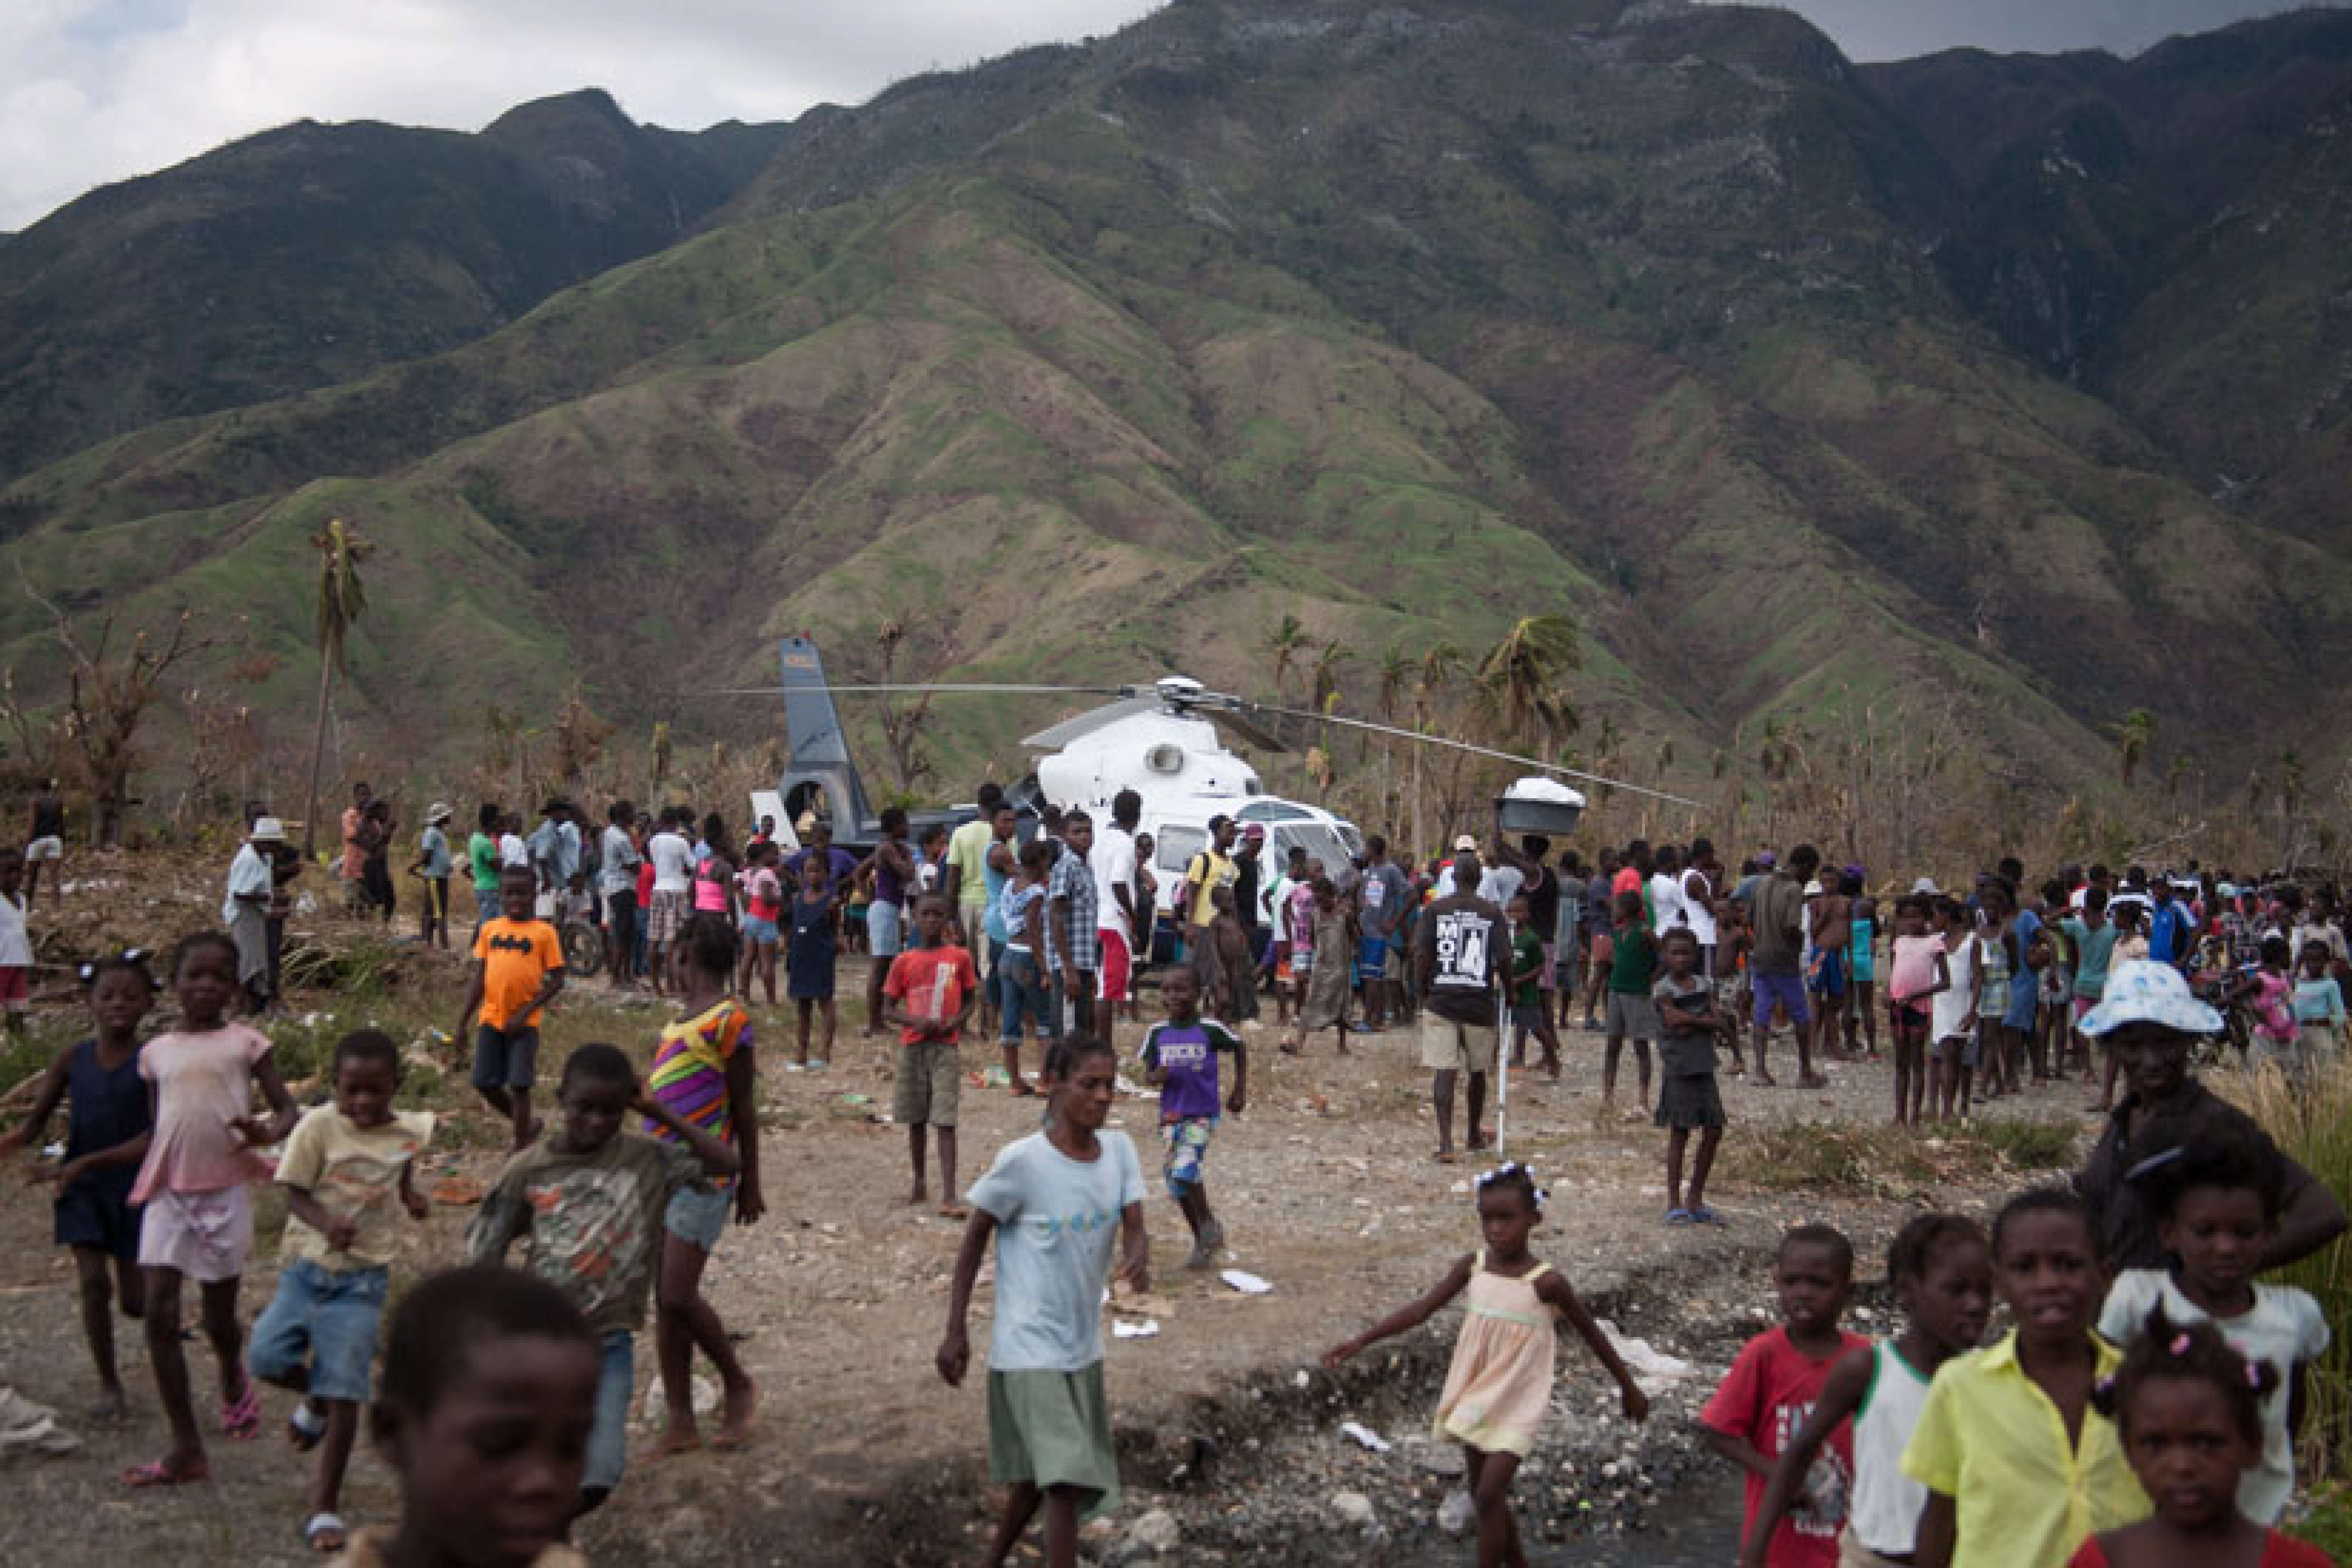 Victims of Hurricane Matthew walk towards an open area where an aid helicopter landed Oct. 10 in Tiborun, Haiti. As a sign of his closeness and concern, Pope Francis sent aid money to hurricane-stricken Haiti, to be distributed through the hardest-hit dioceses to assist flood victims.